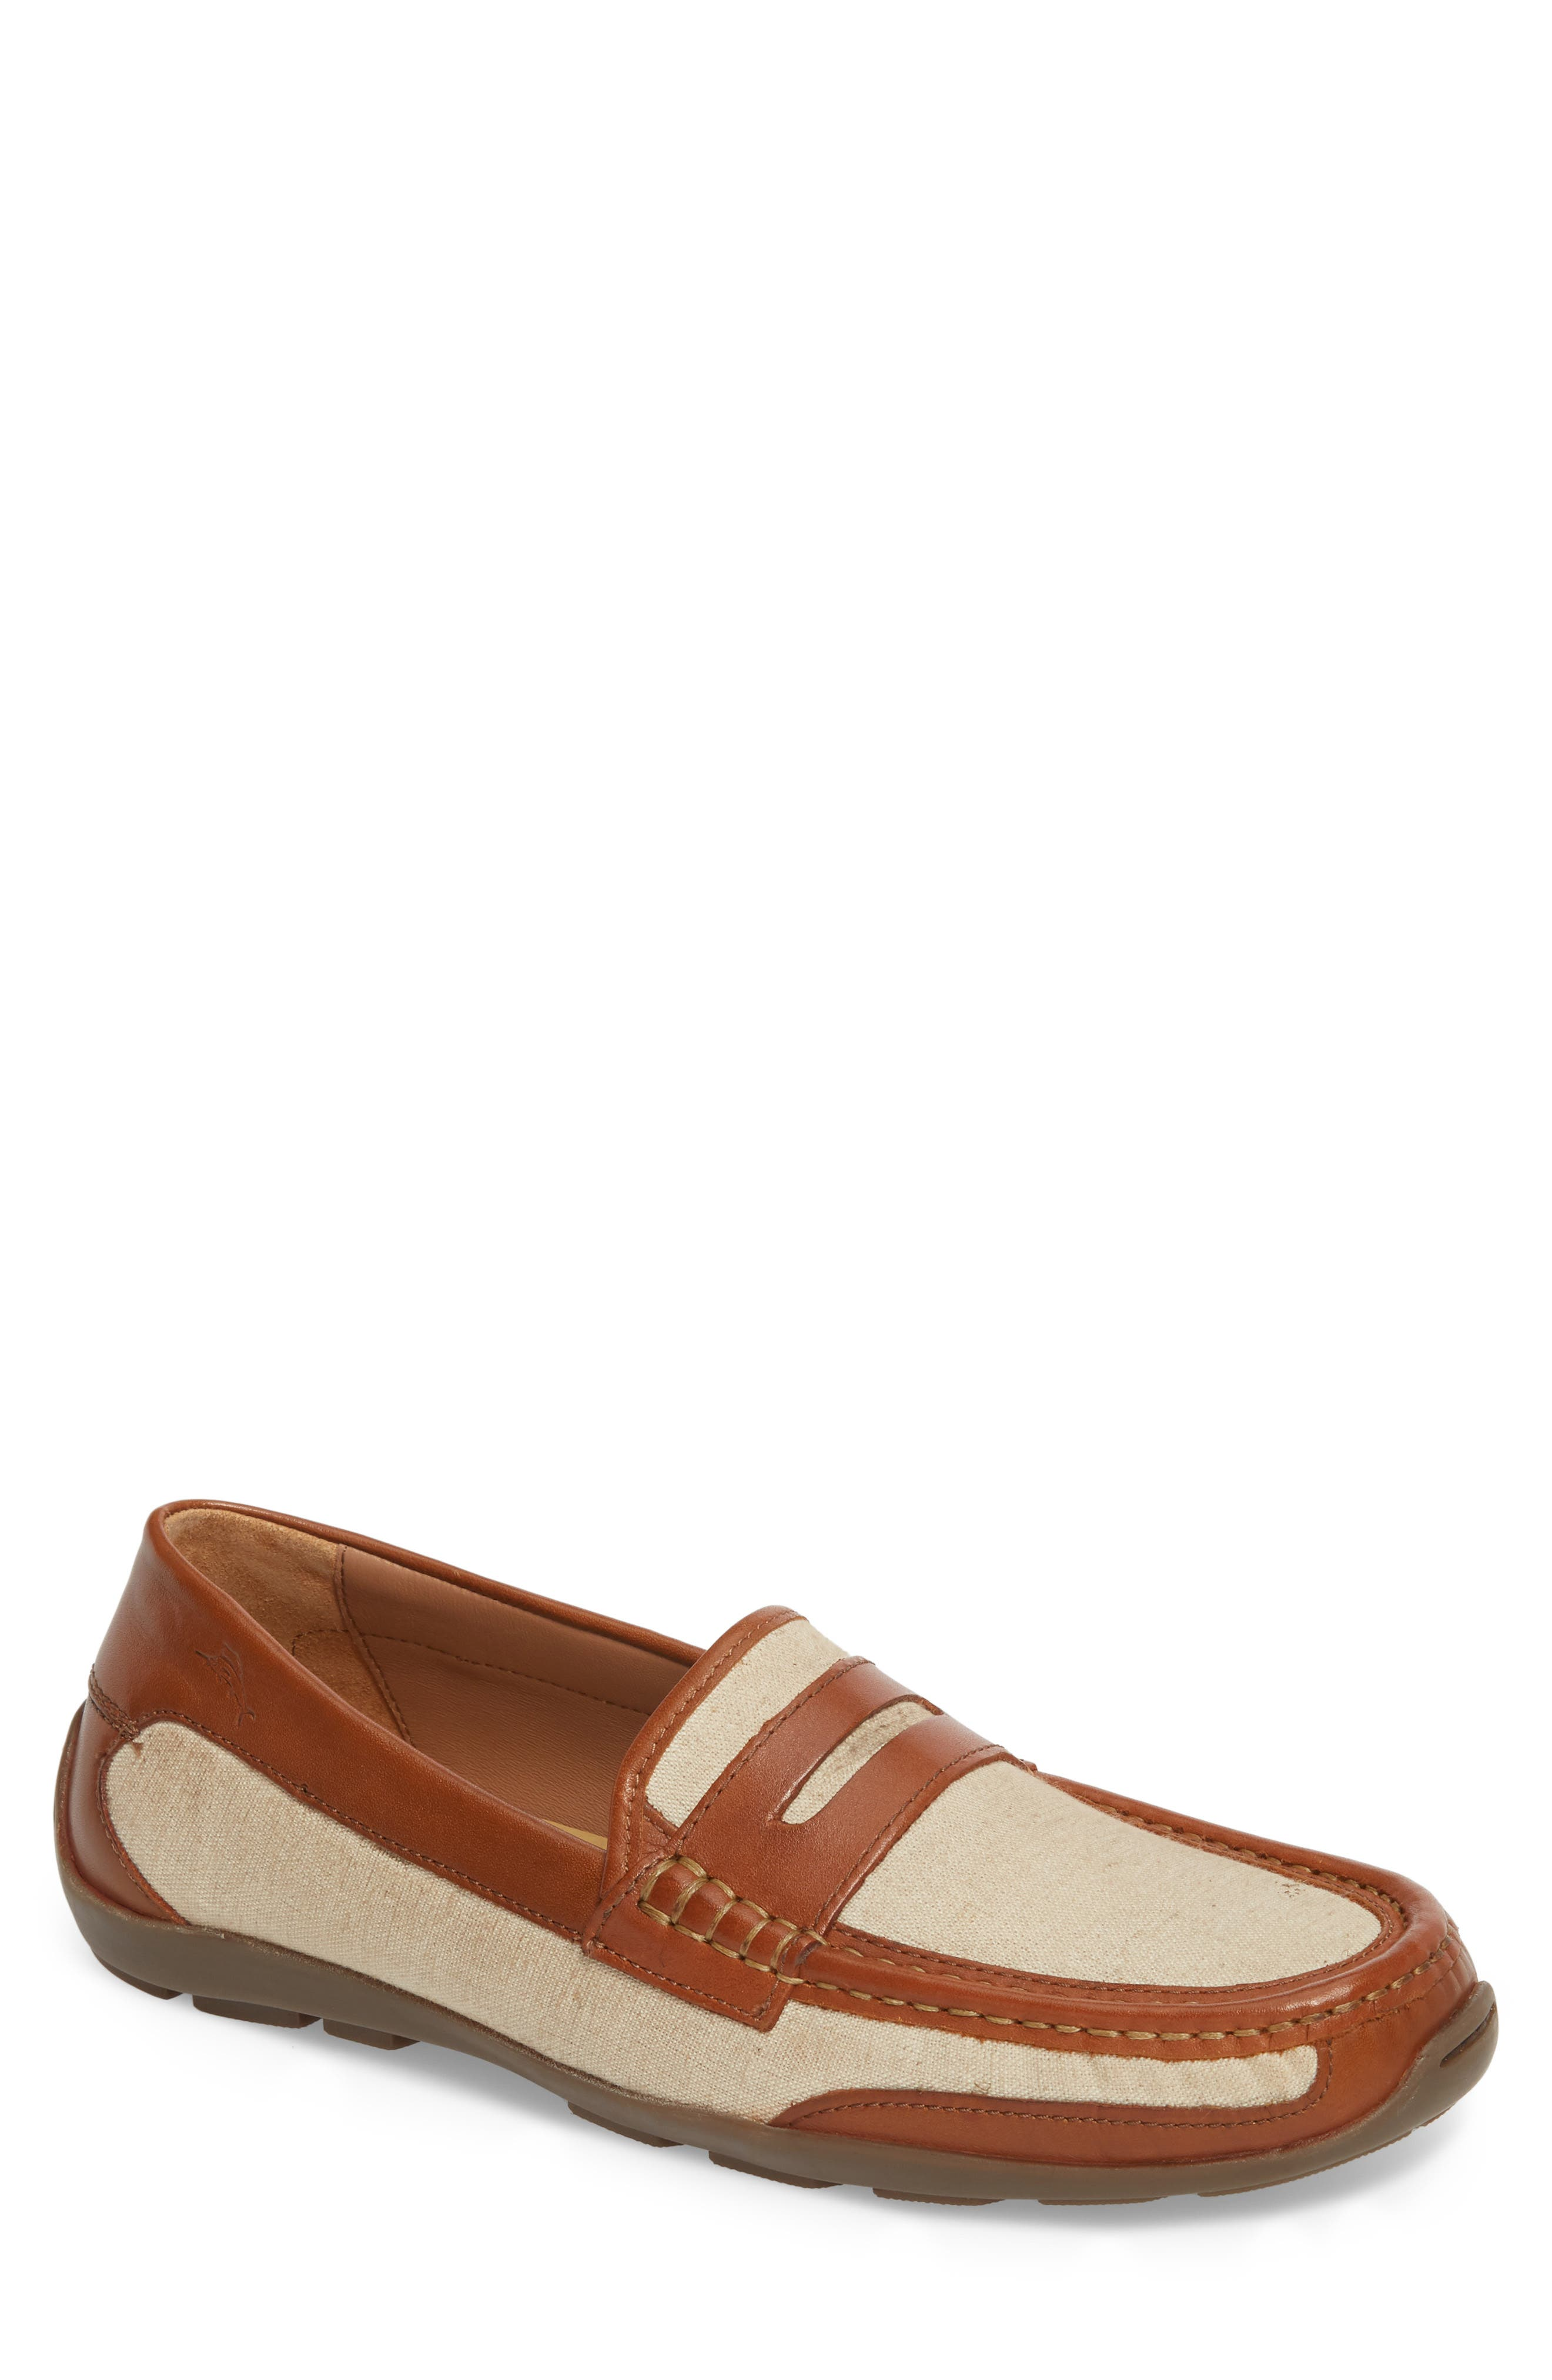 frye shoes for men 11 eee loafers restaurant caton